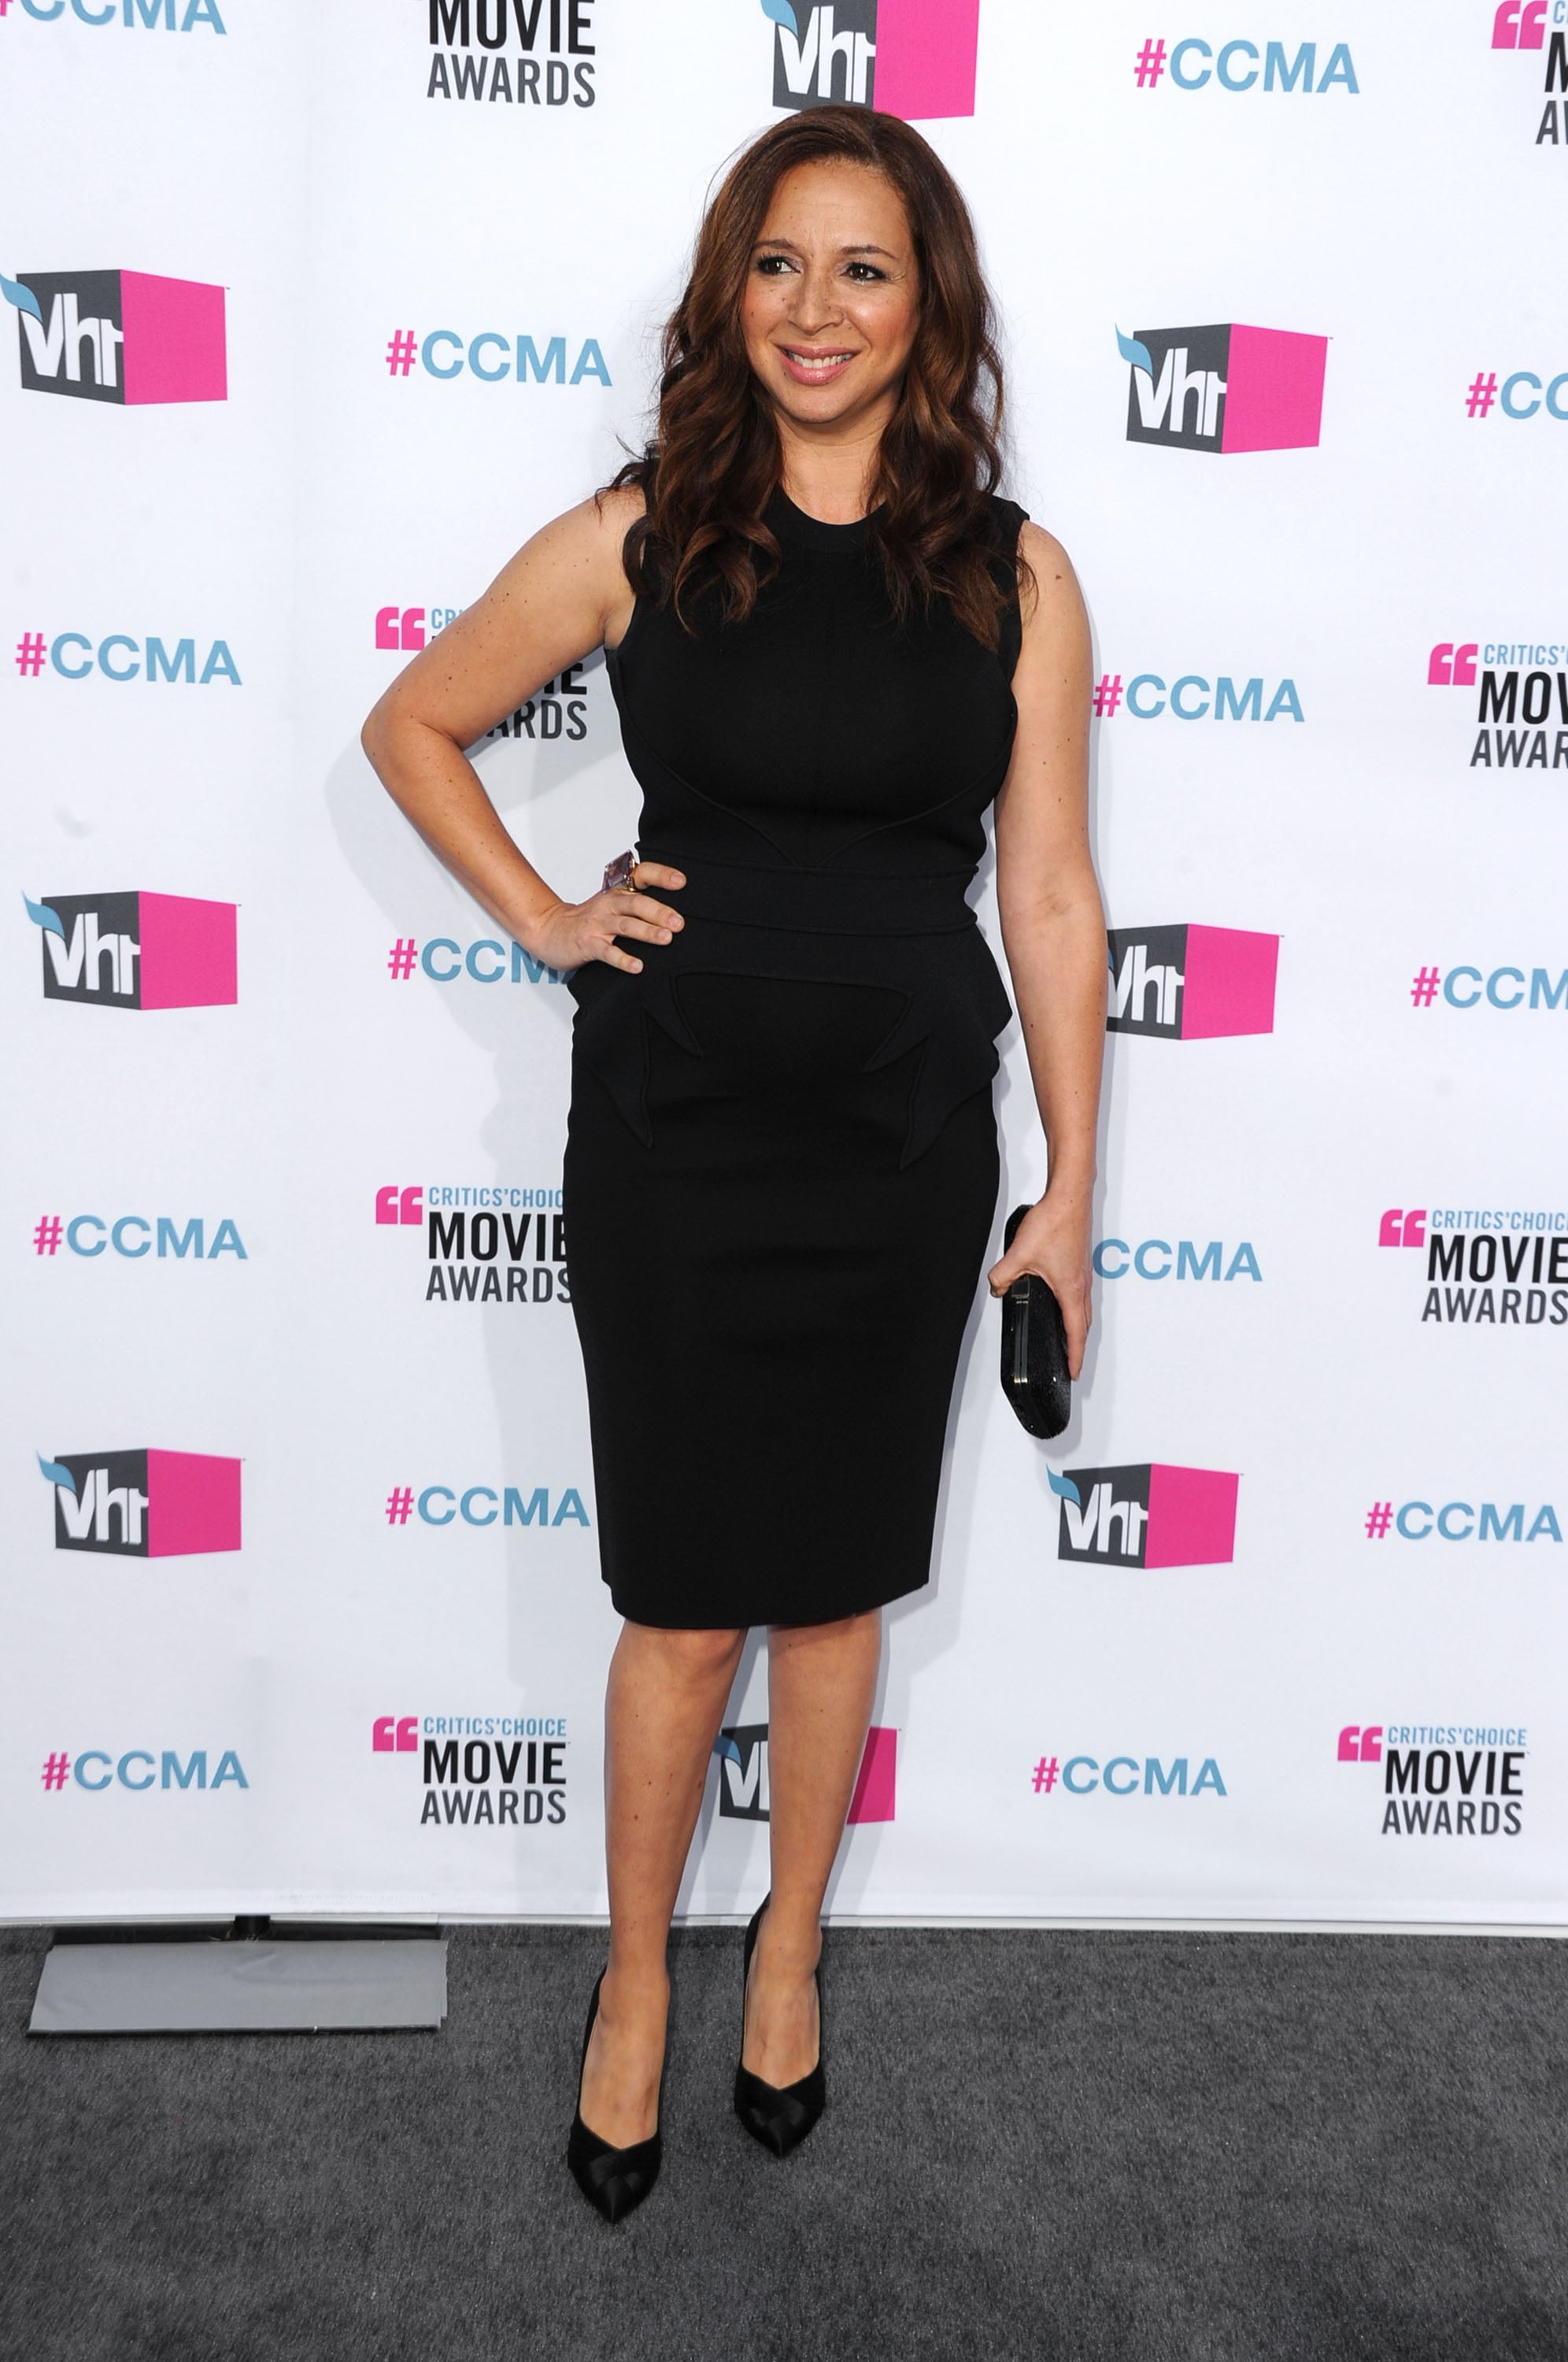 Maya Rudolph on the red carpet at the 2012 Critcs' Choice Movie Awards.